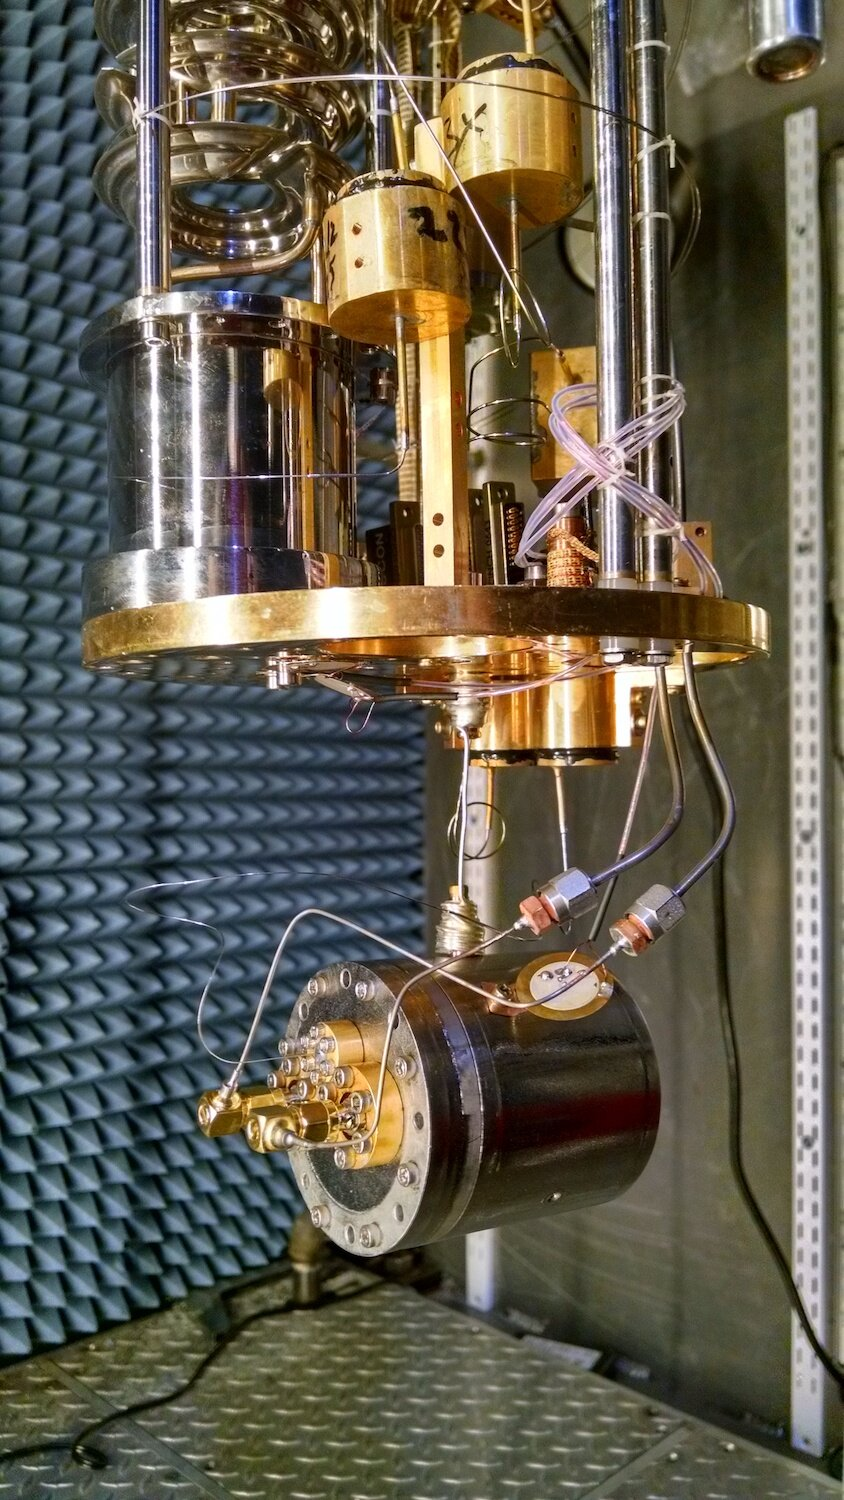 Dr. De Lorenzo's experimental setup for her Ph.D. work measuring high-Q acoustic modes in superfluid helium-4 using optomechanical coupling to microwave modes.